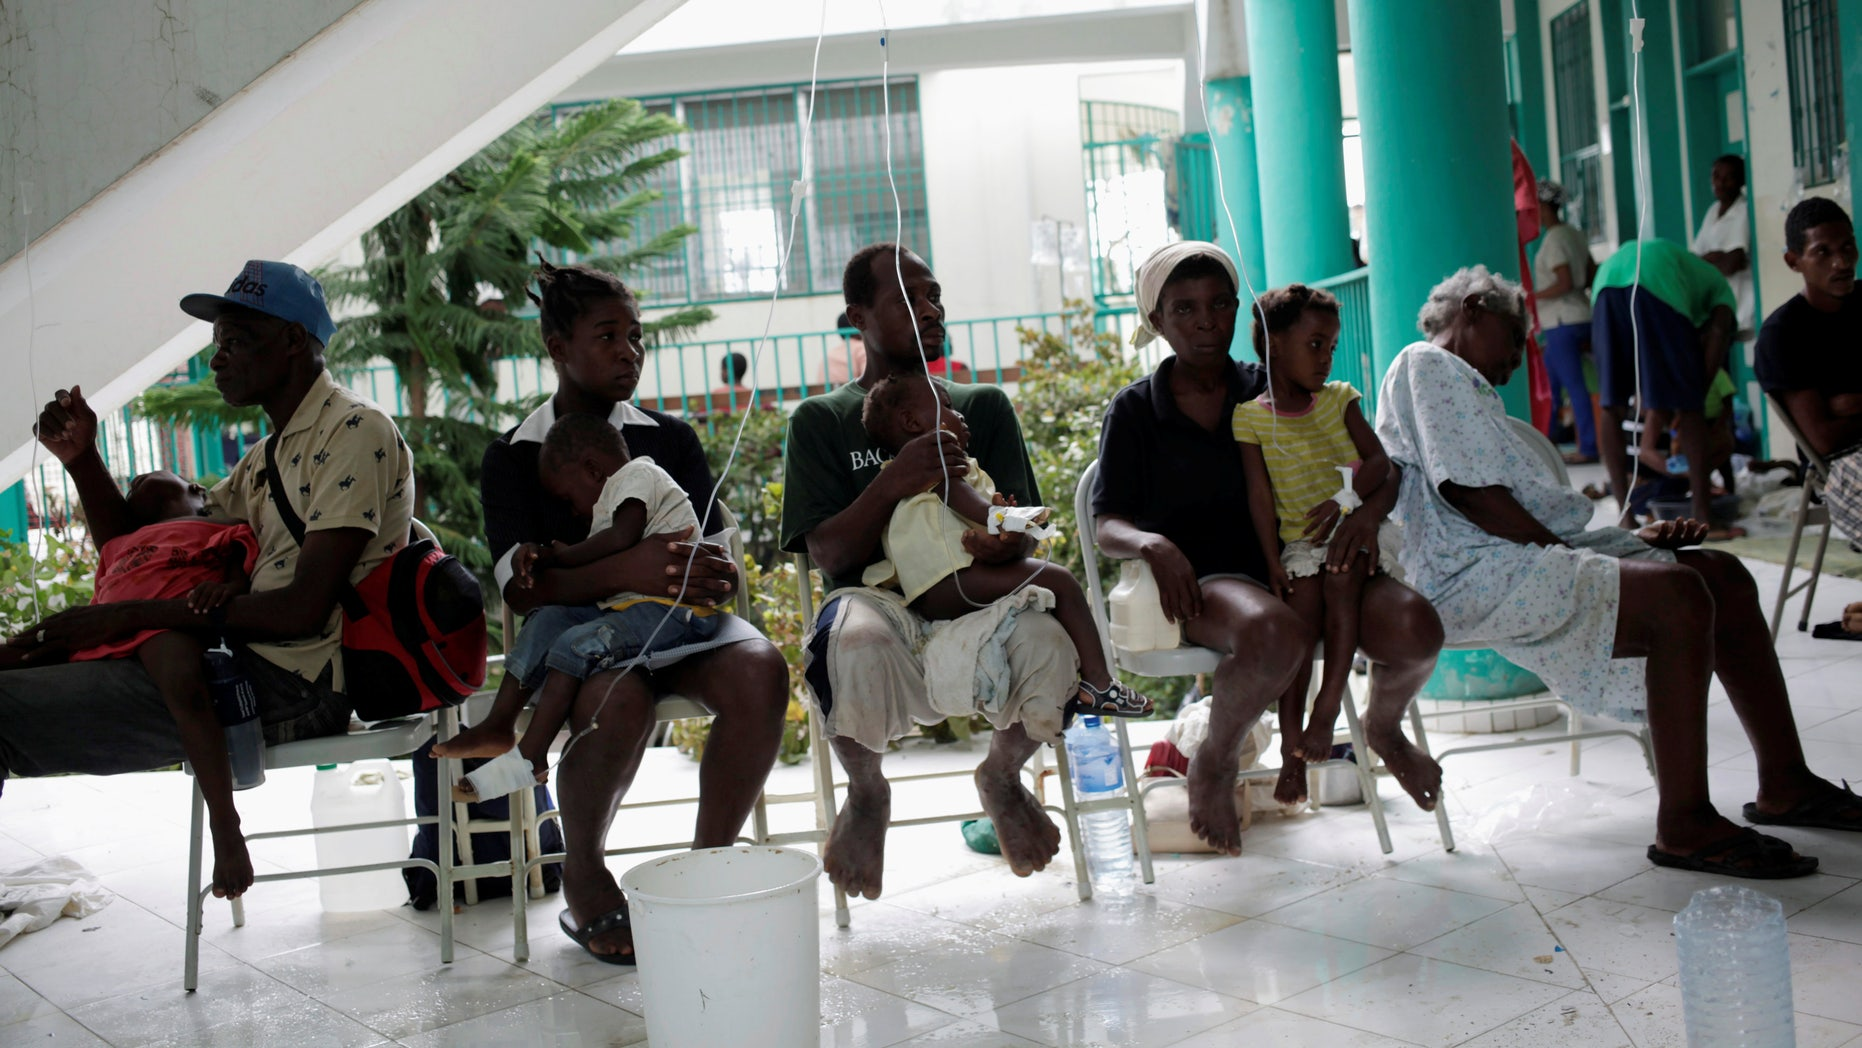 Adults hold children receiving treatment for cholera after Hurricane Matthew in the Hospital of Port-a-Piment, Haiti, October 9, 2016.